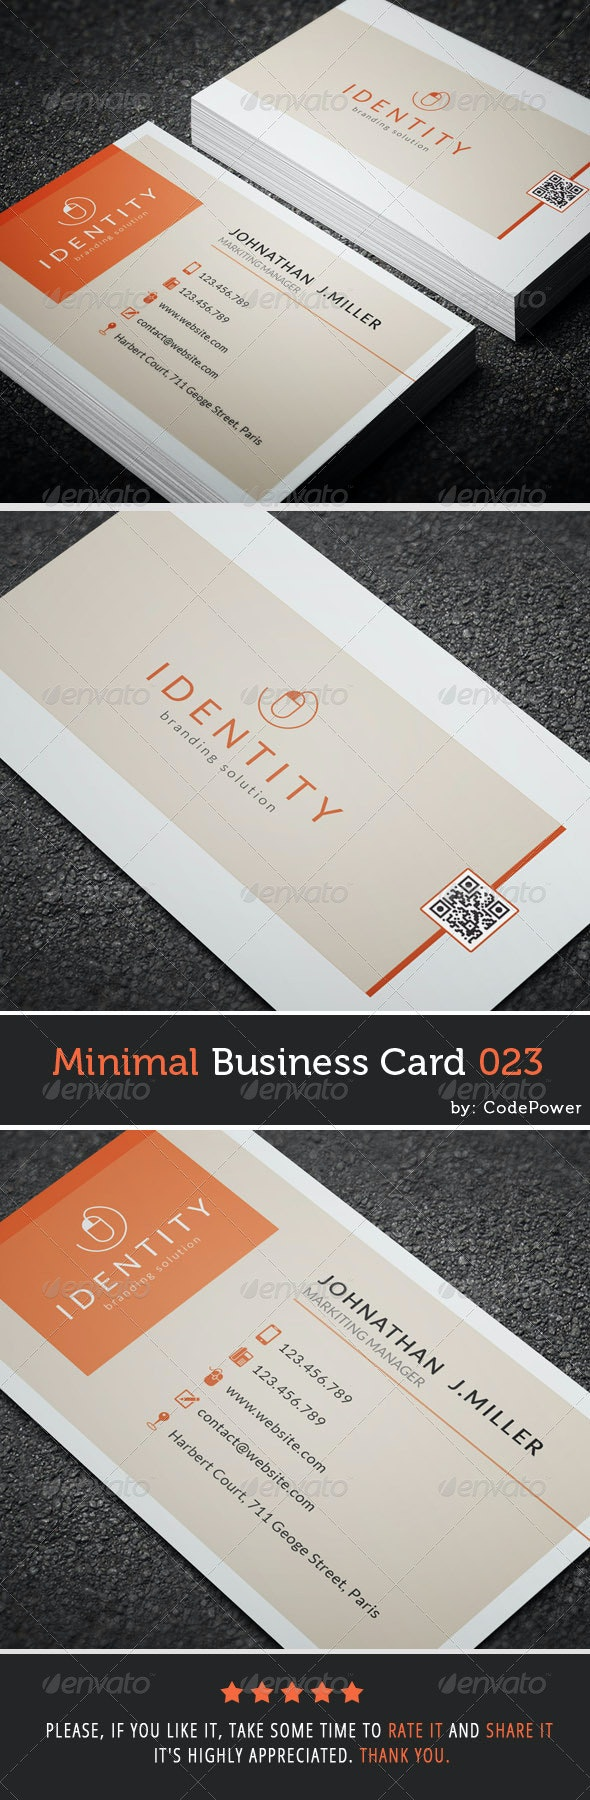 Minimal Business Card 023 - Corporate Business Cards